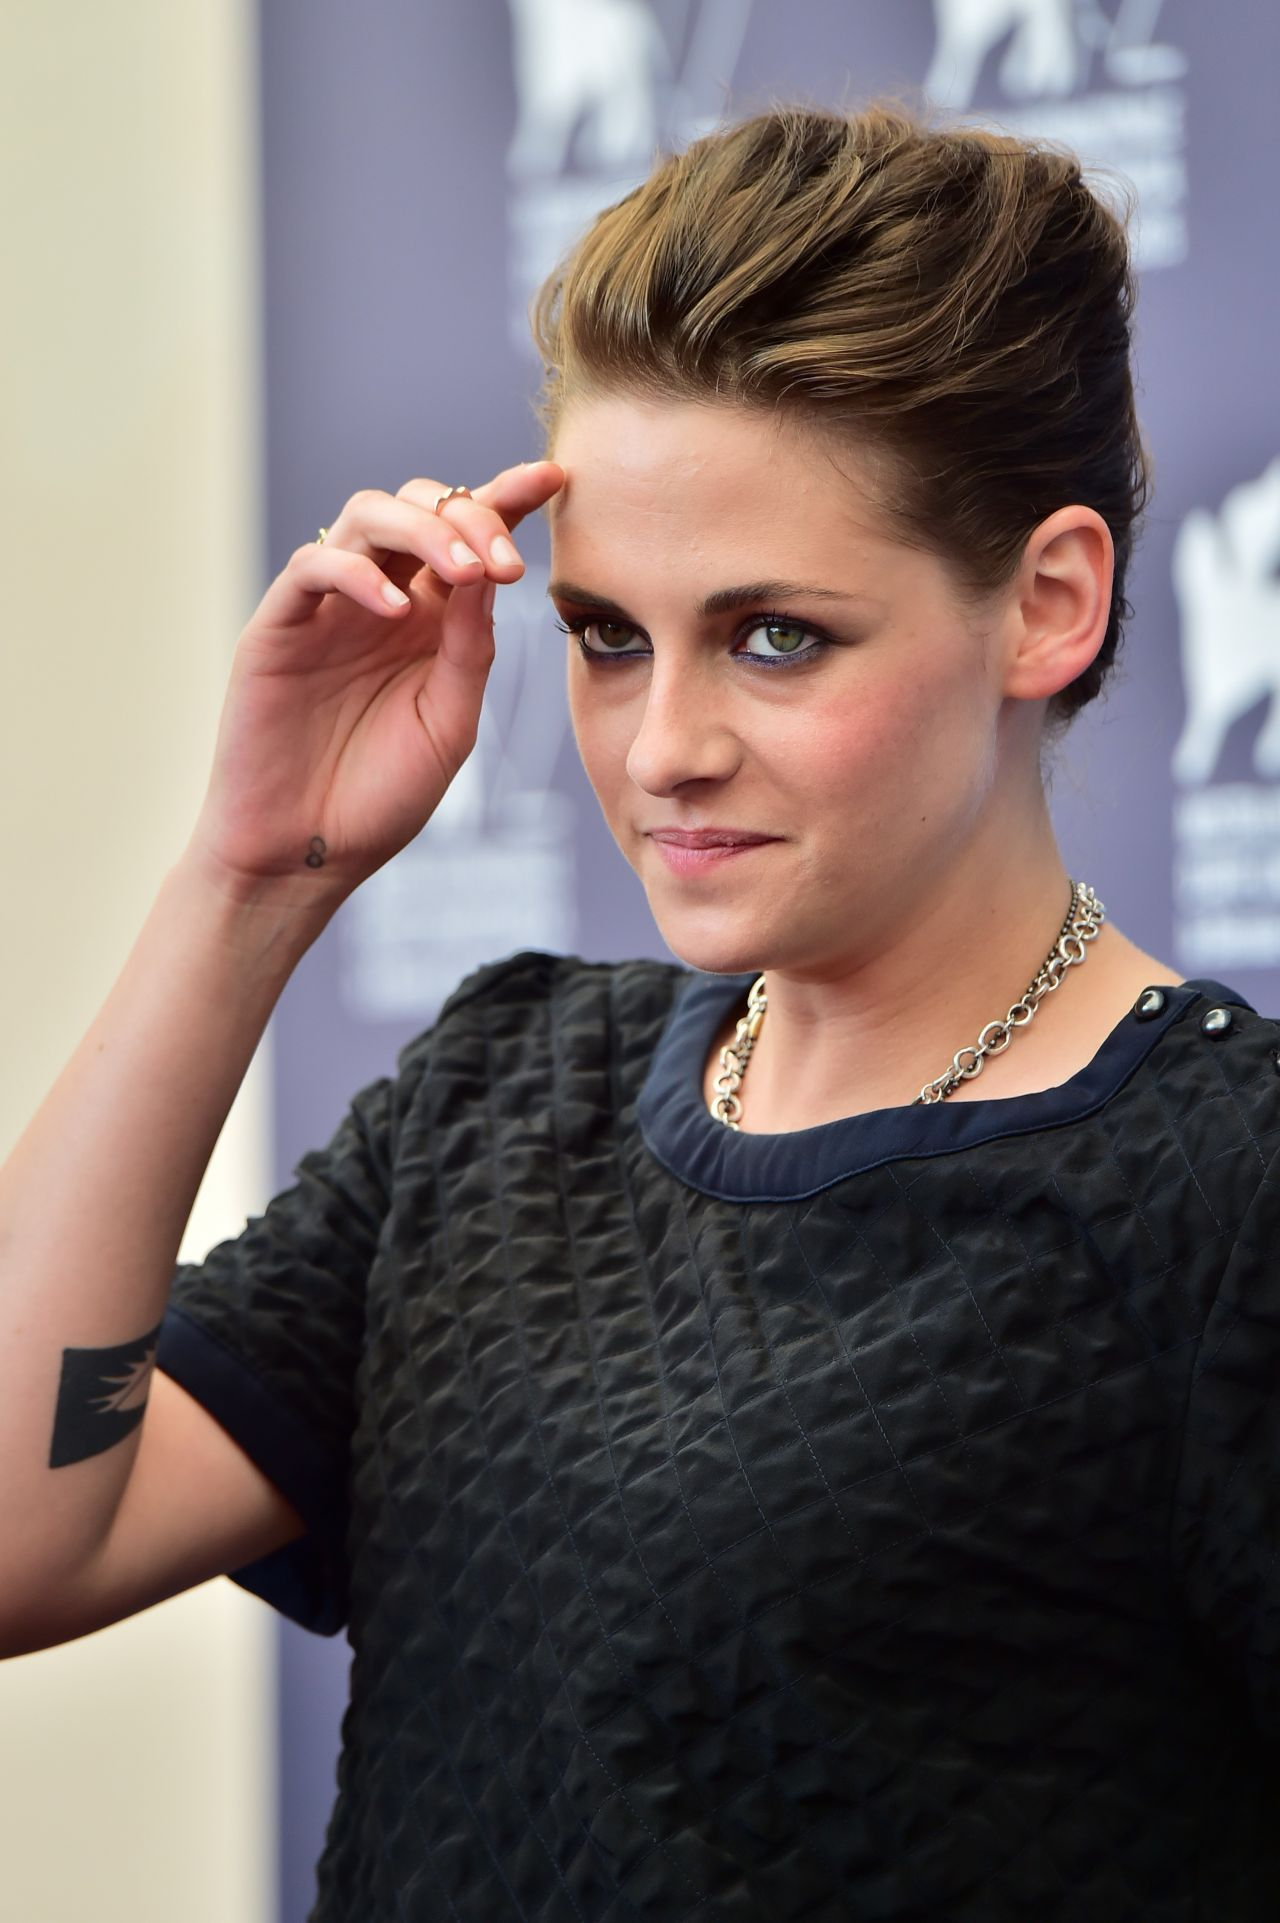 Kristen stewart equals - 3 part 8